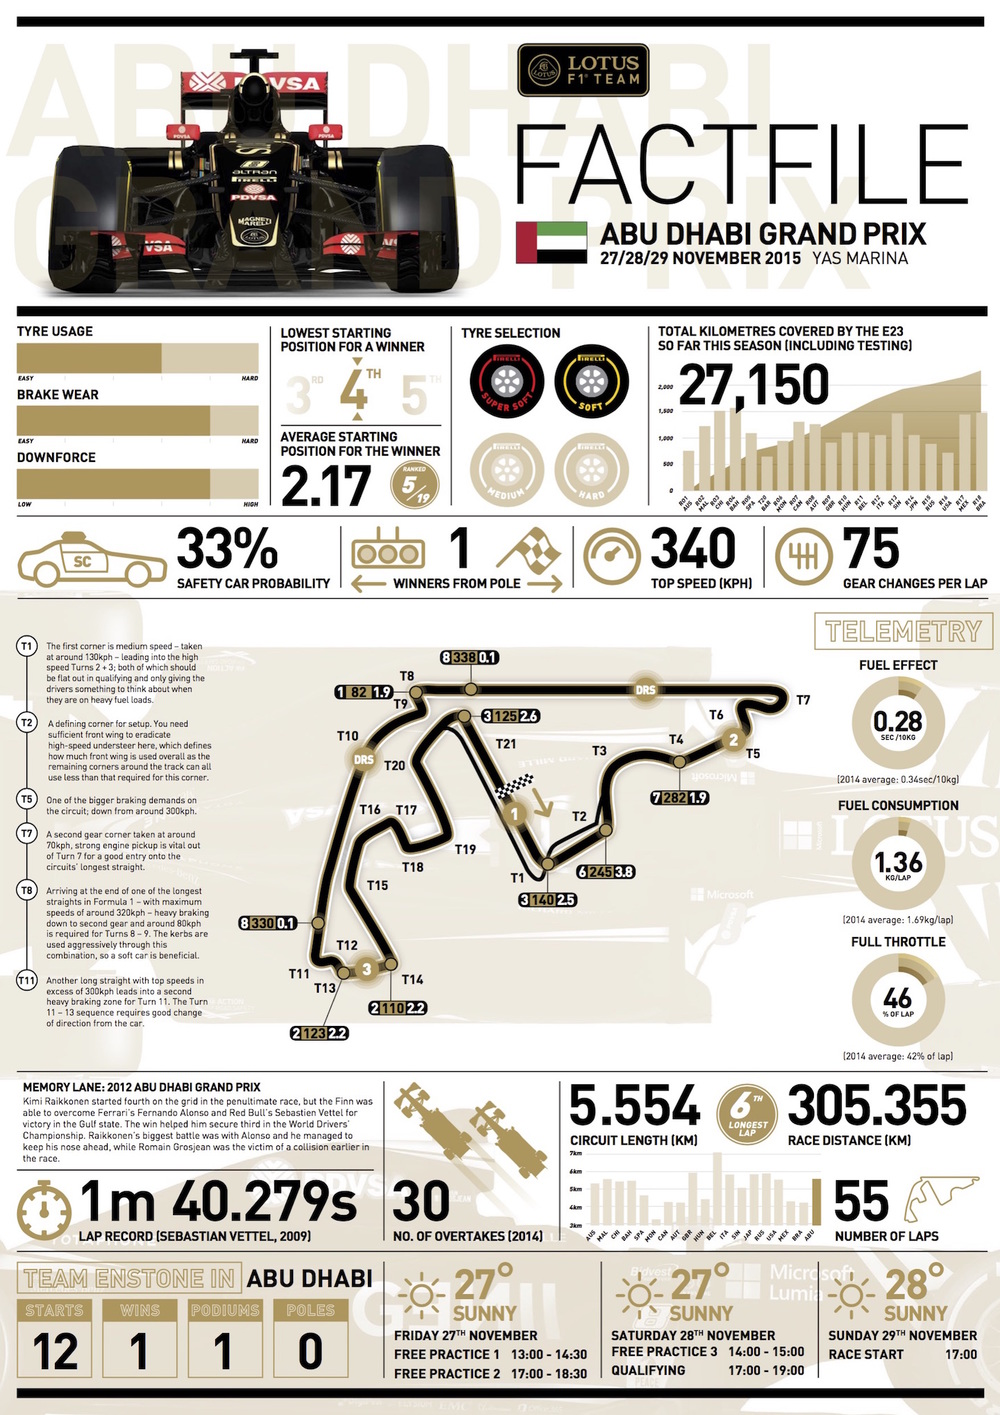 Lotus Abu Dhabi factfile